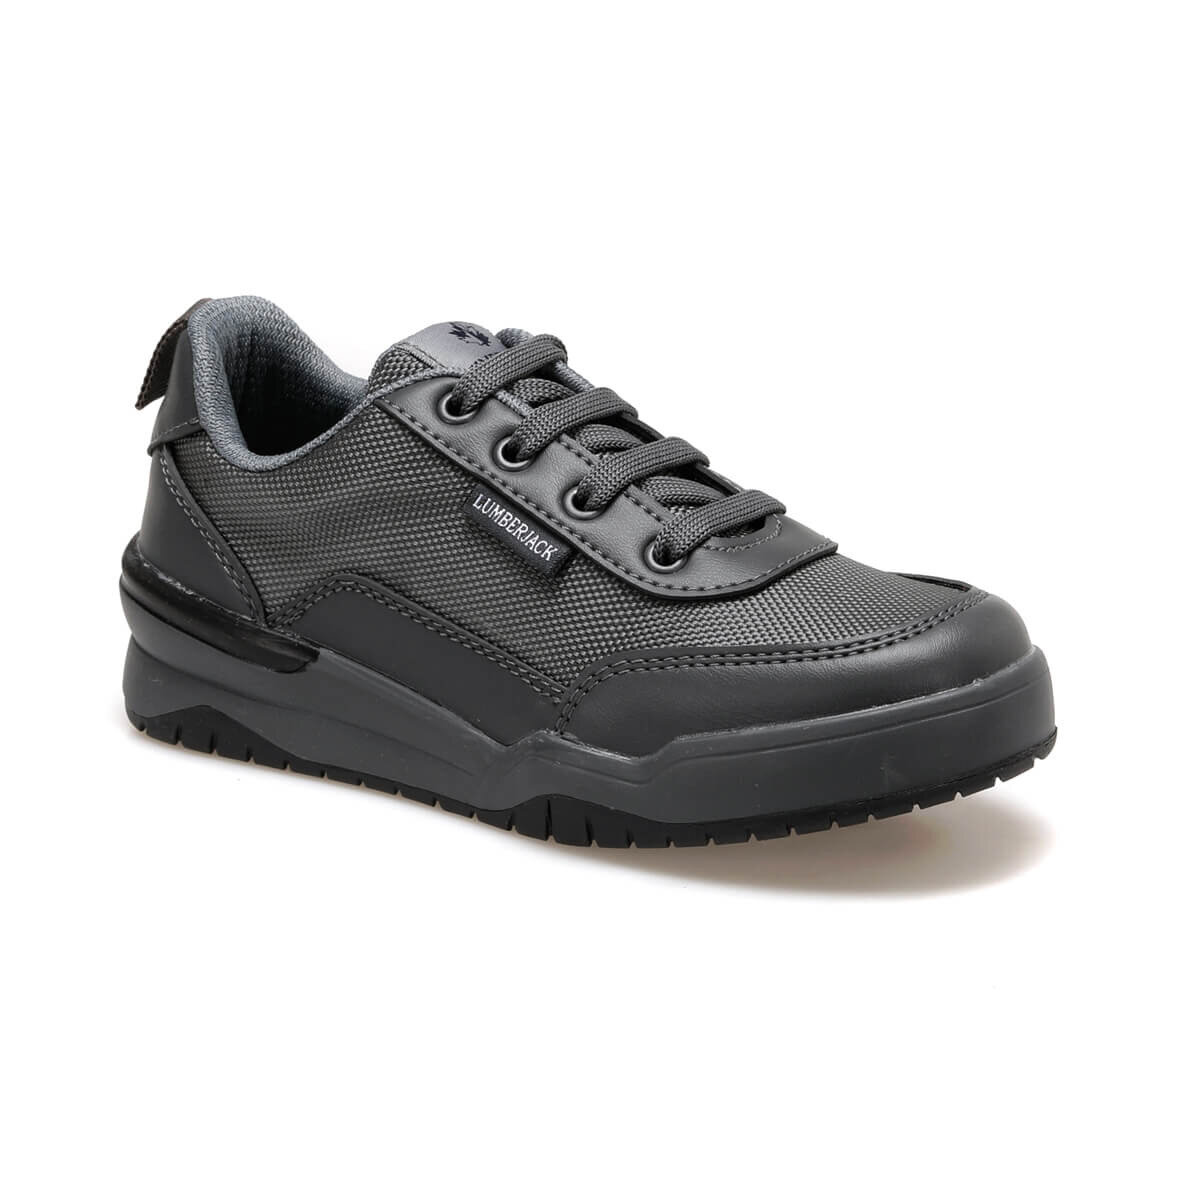 FLO MASCOT 9PR Dark Gray Male Child Sneaker Shoes LUMBERJACK